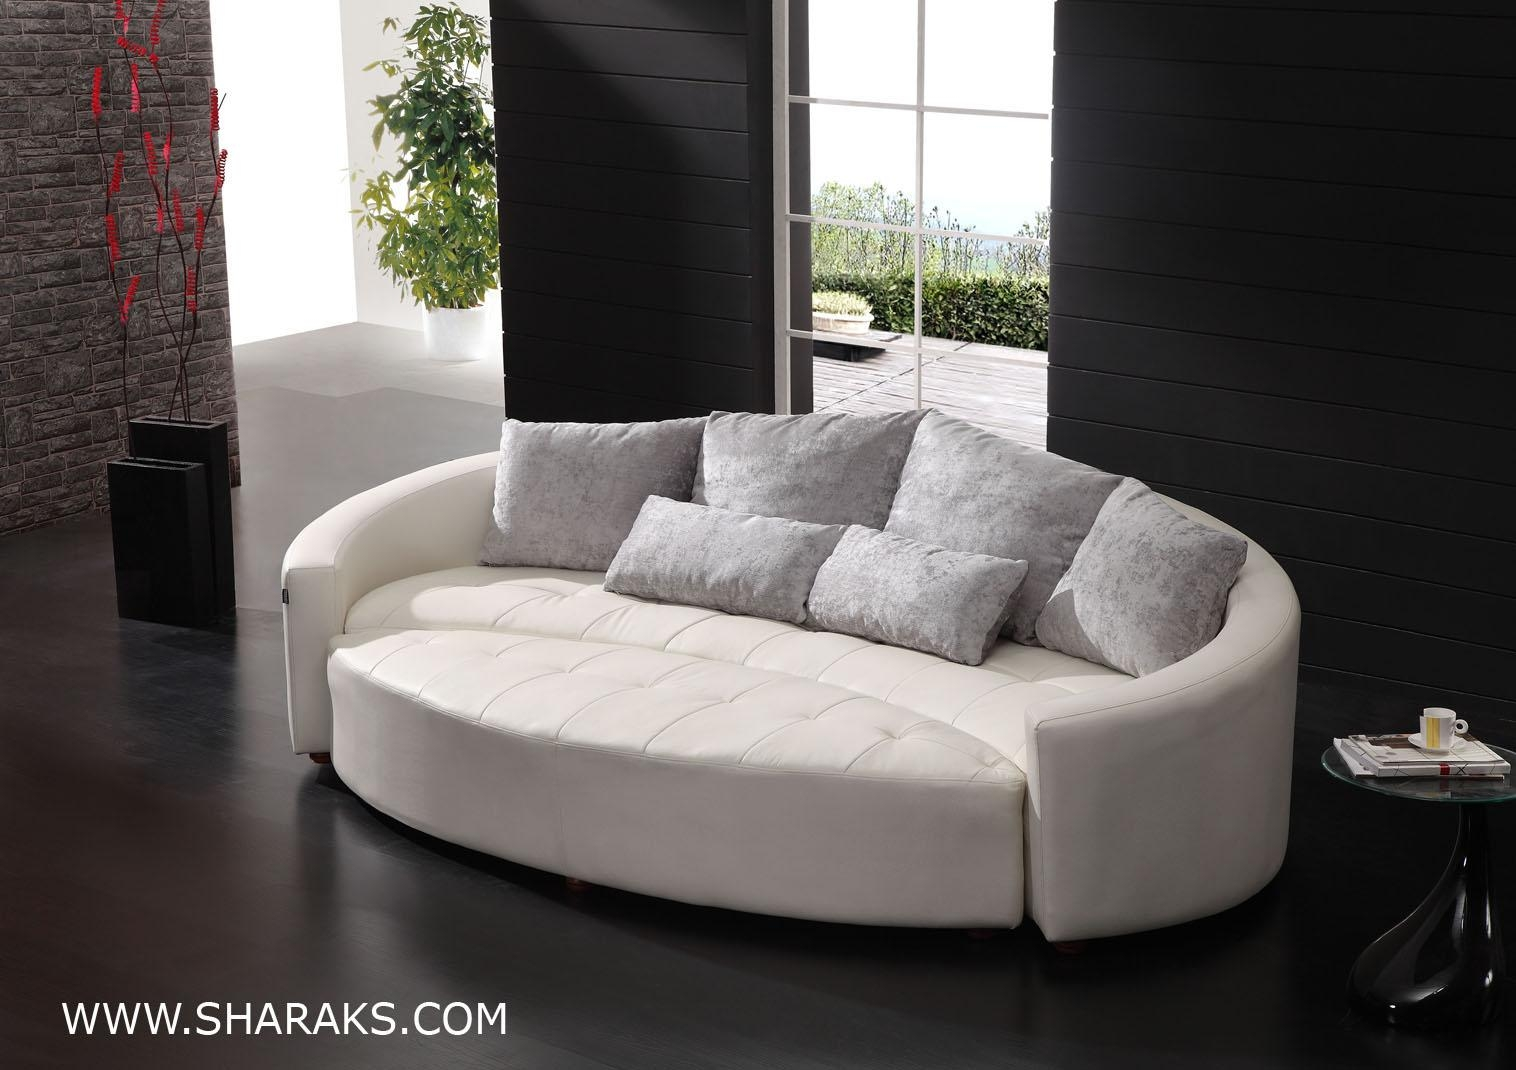 Curved Sofas For Bay Window | Livingroom & Bathroom For Sofas For Bay Window (View 9 of 20)